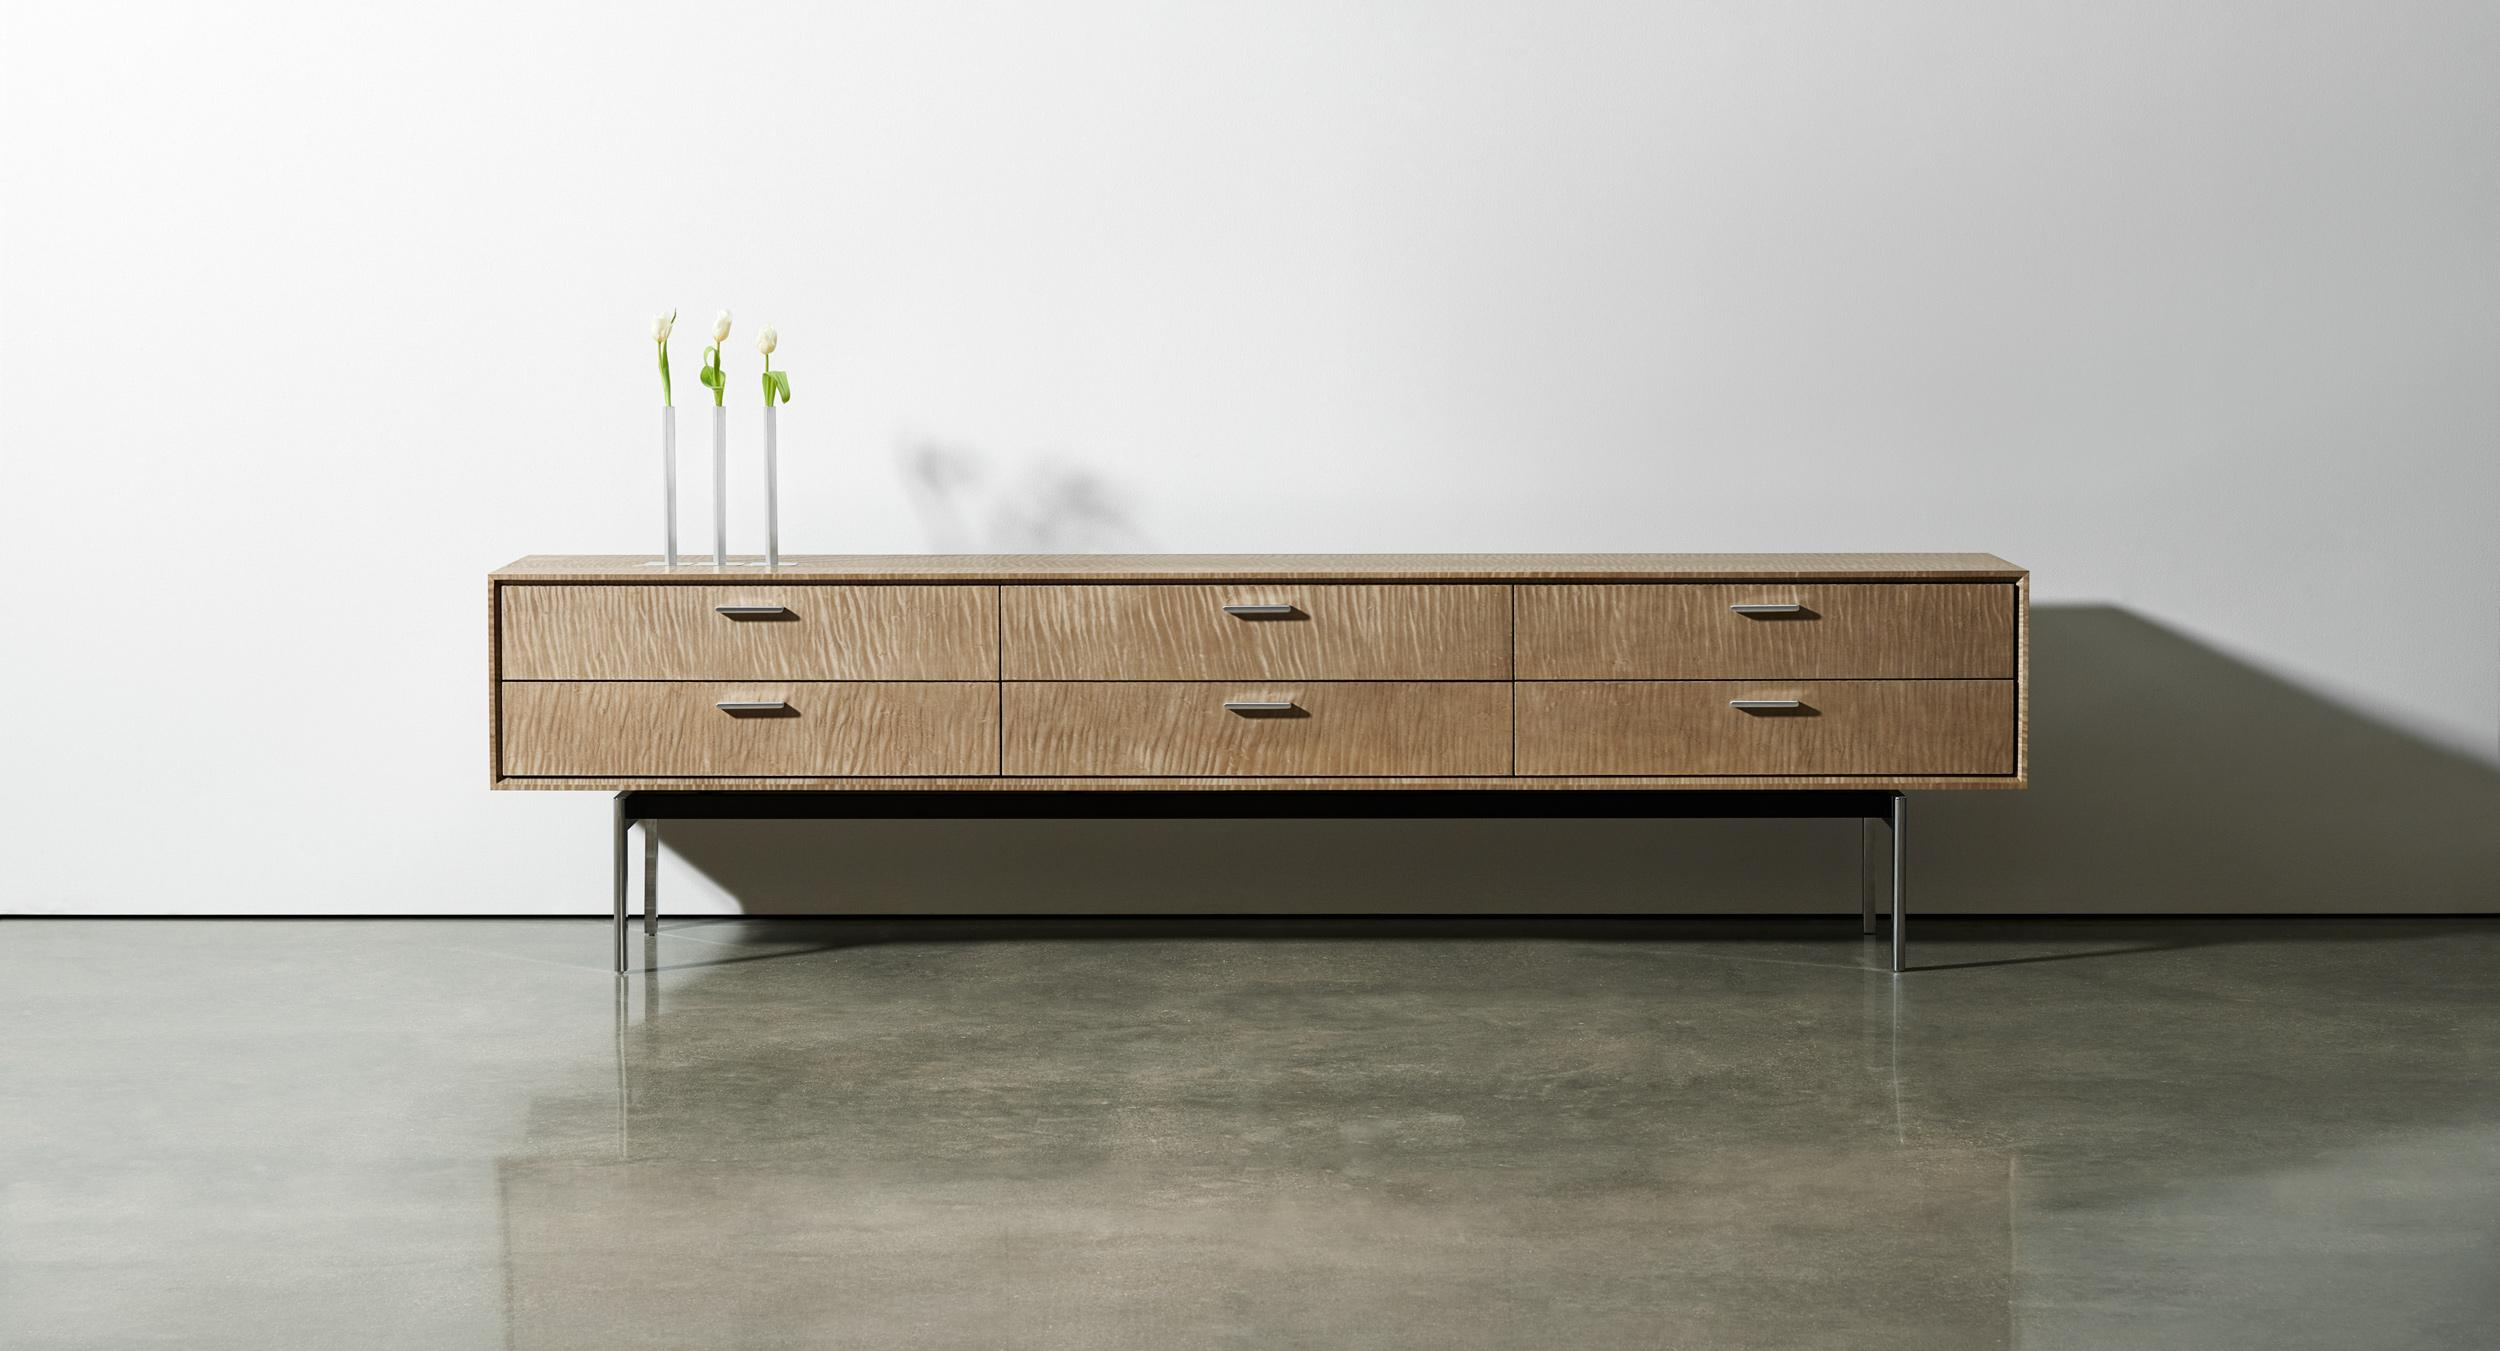 Halo's elegant profile is a must for the contemporary conference room, private office, and public spaces